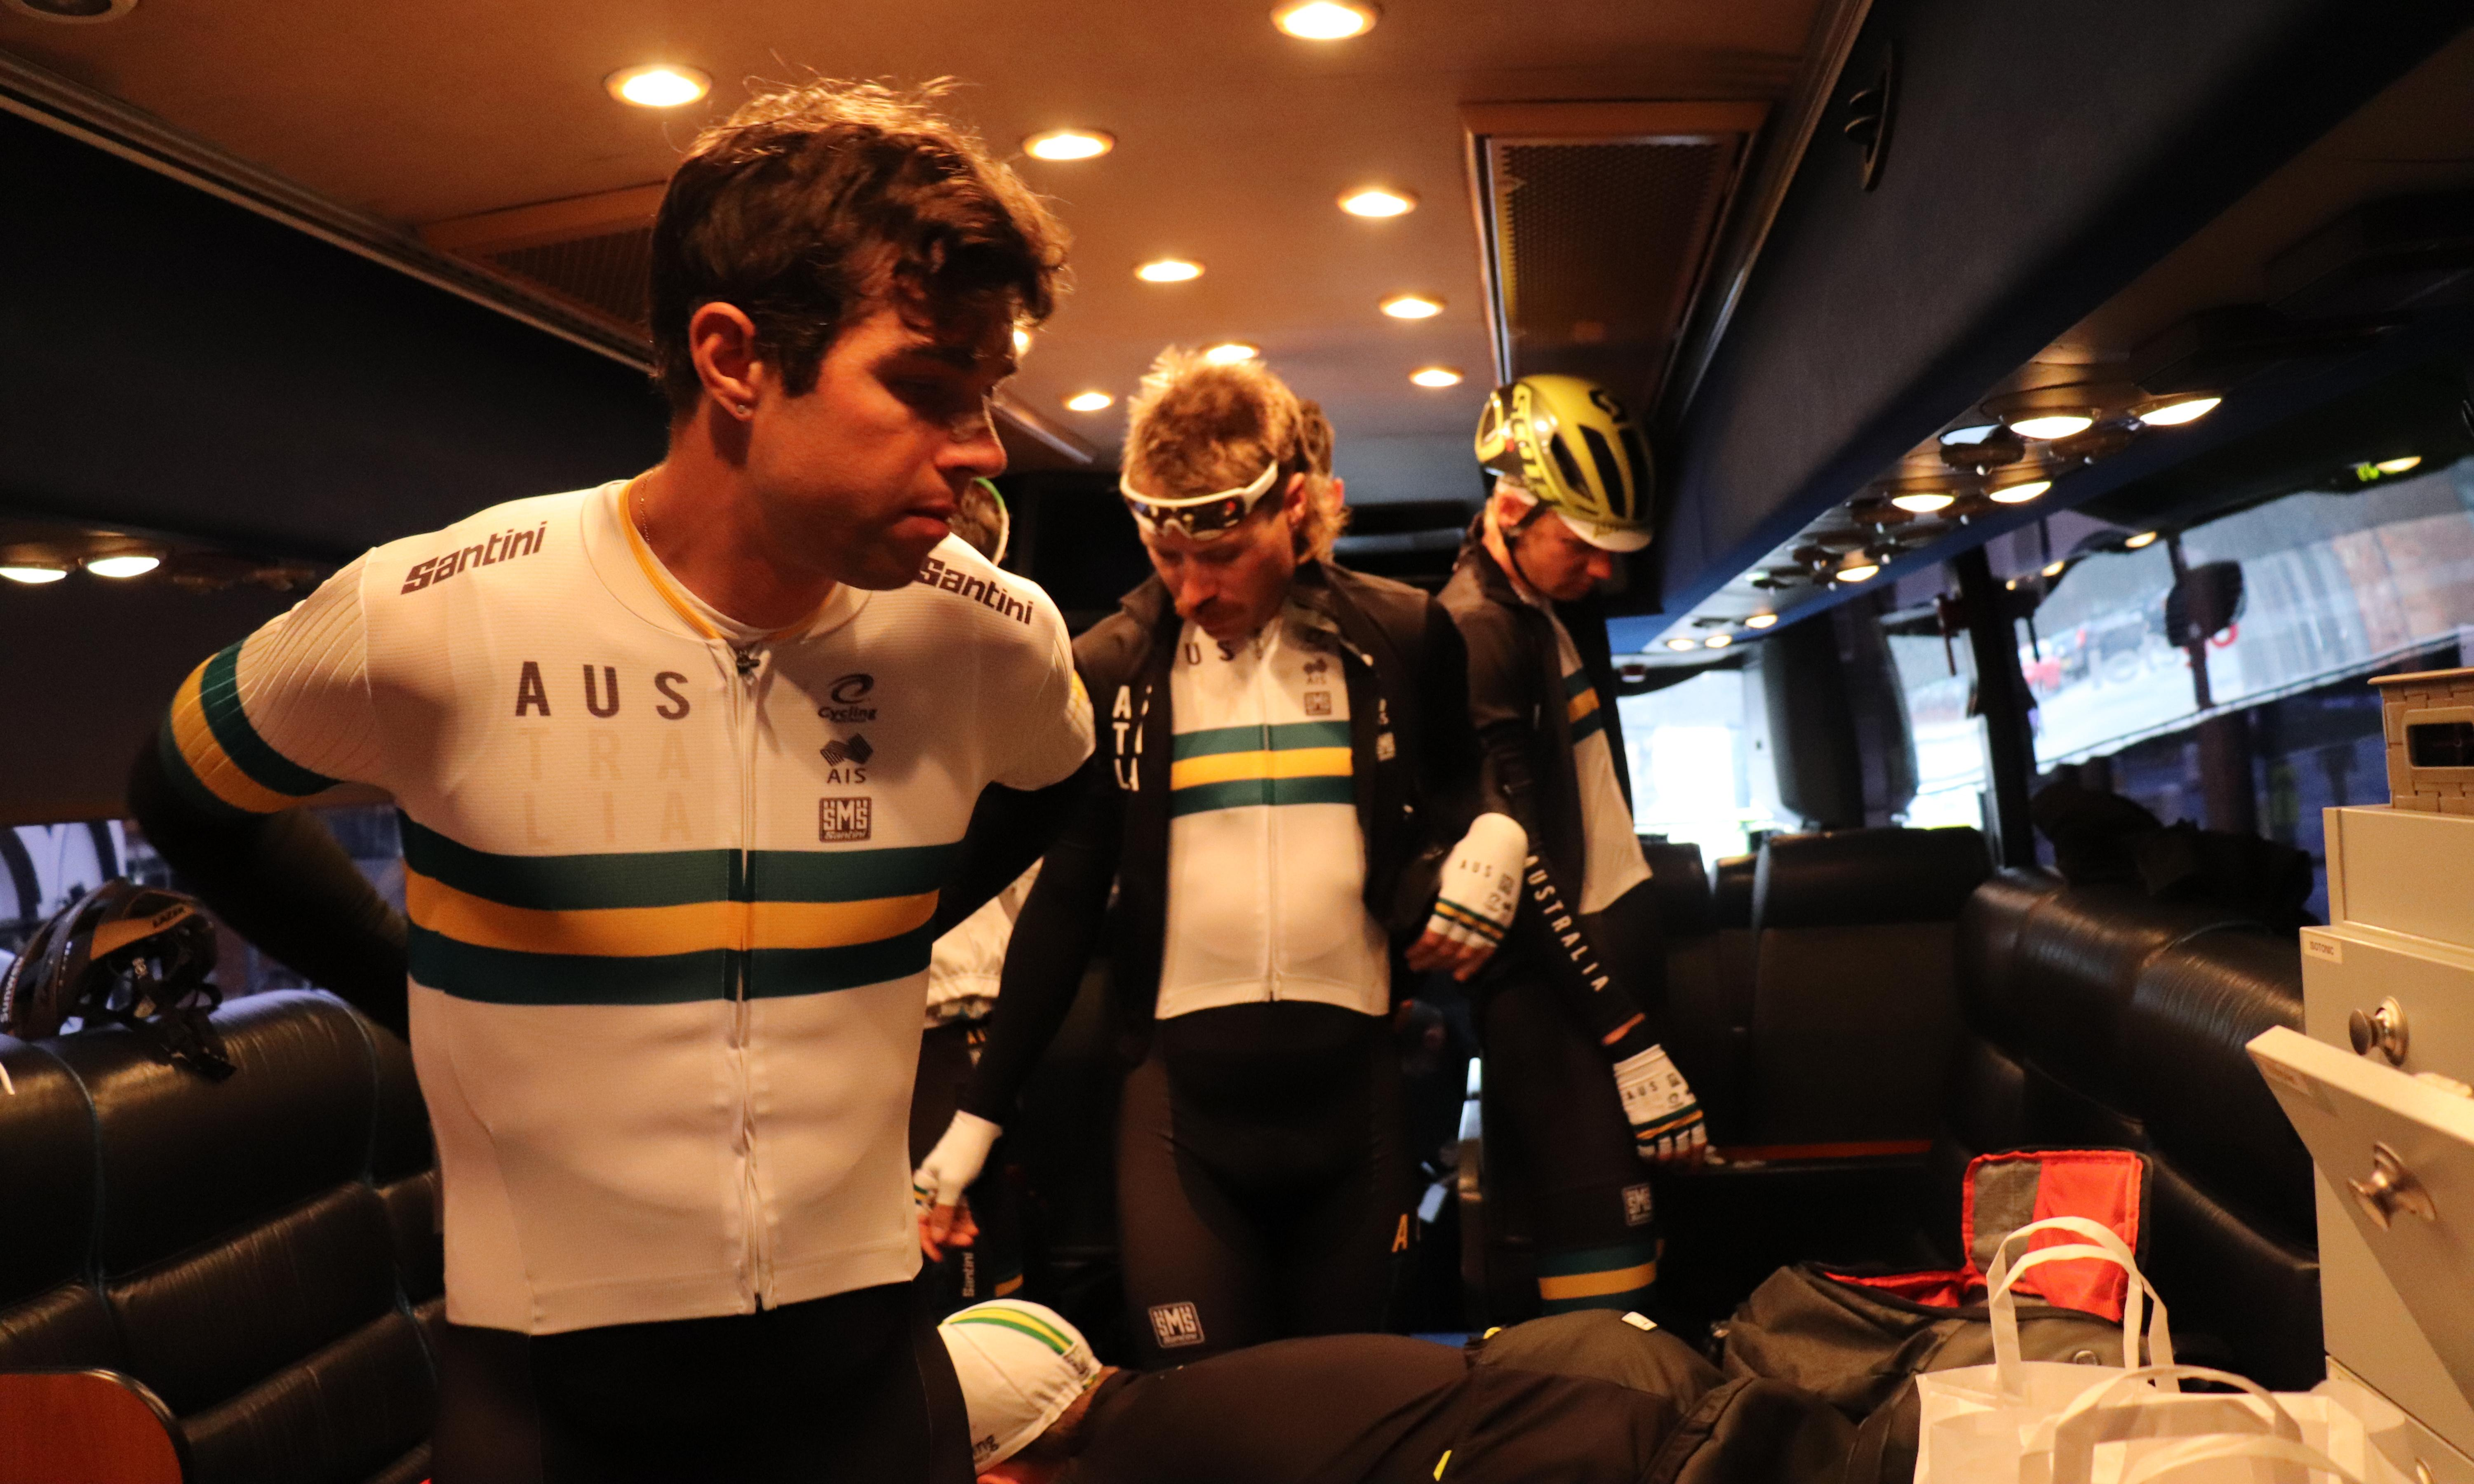 Downpours, forensic analysis and lots of pasta: on the team bus at the cycling worlds